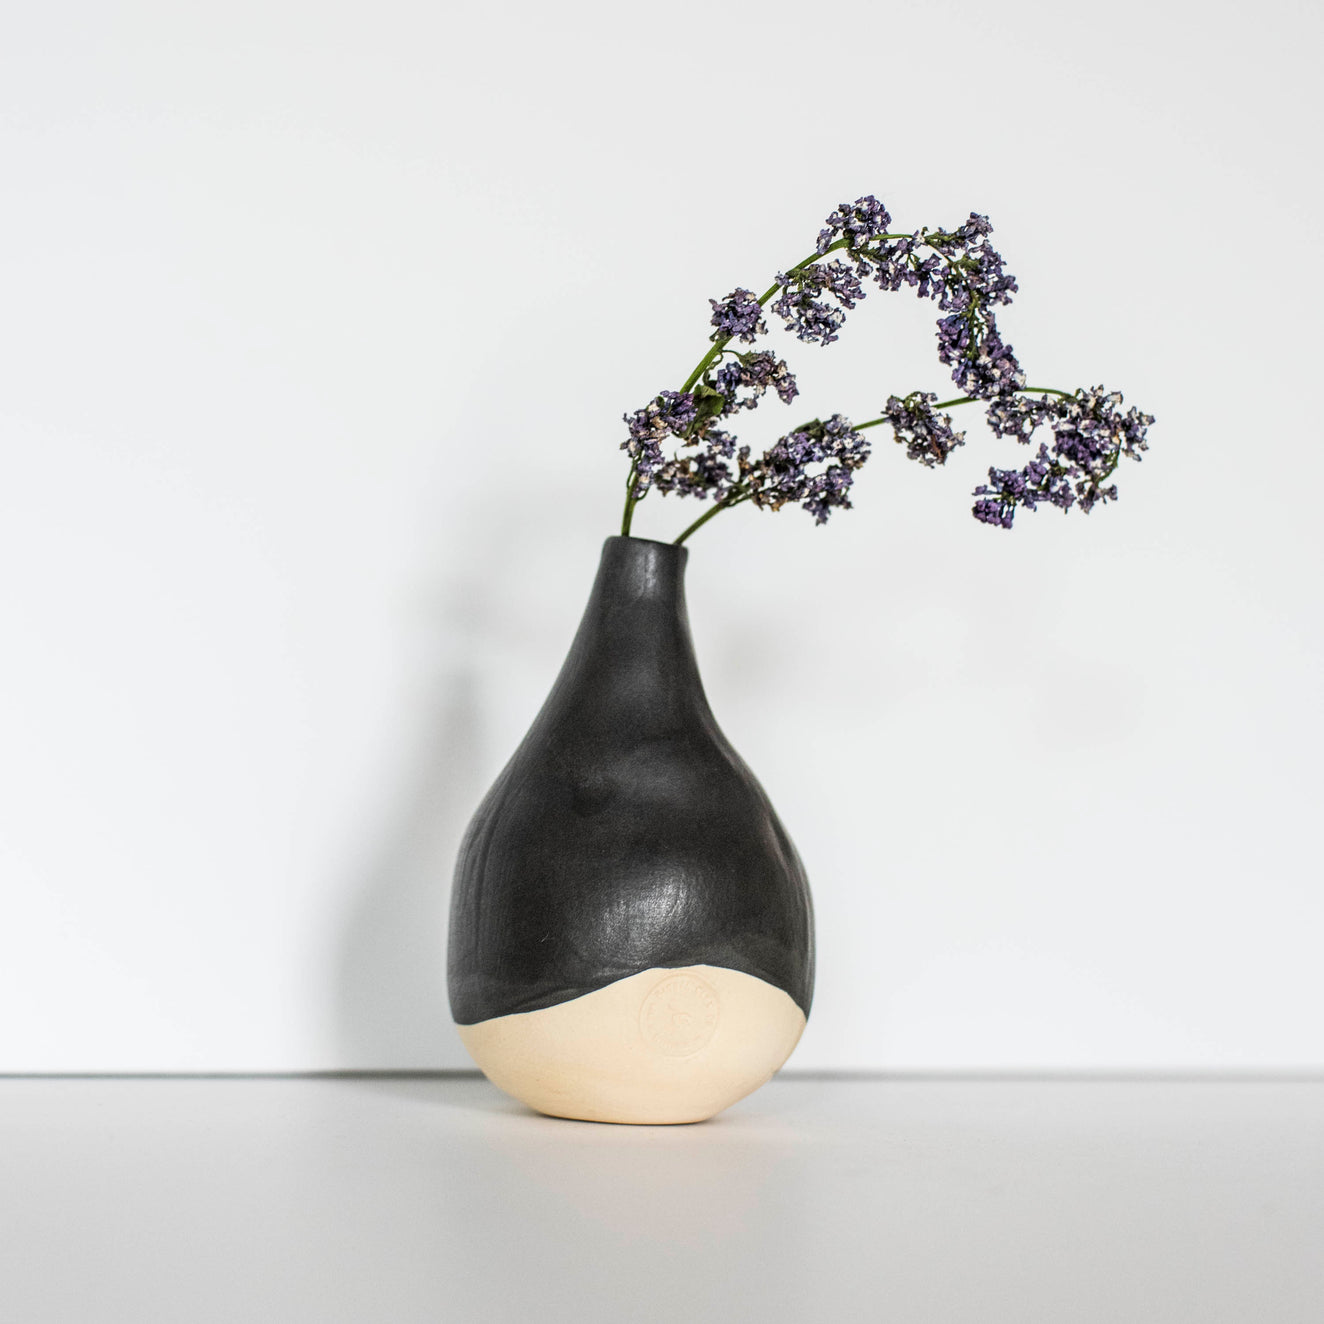 Ritual Clay Water Droplet Bud Vase - Soot Color